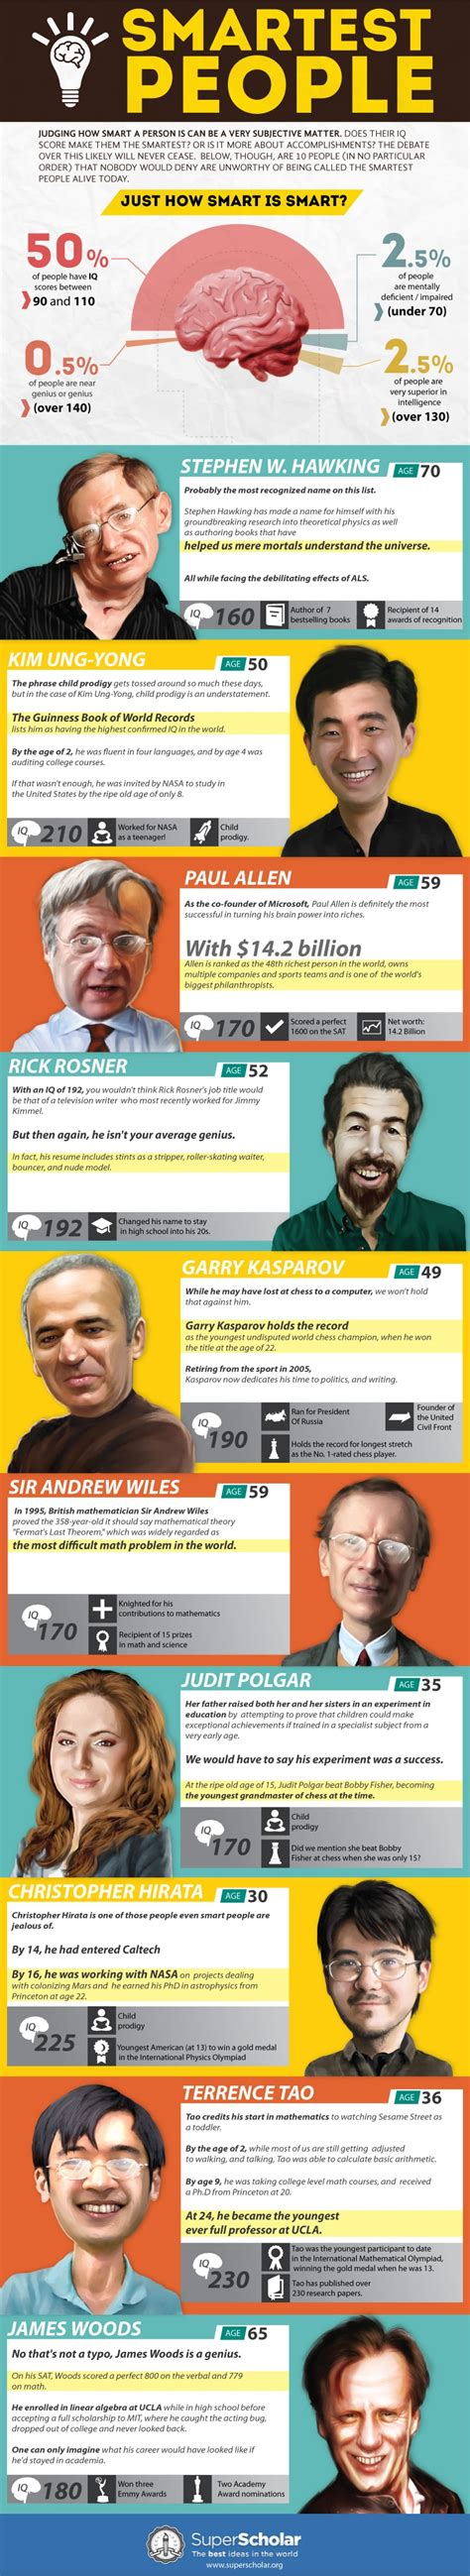 world s smartest top 10 smartest alive today infographic